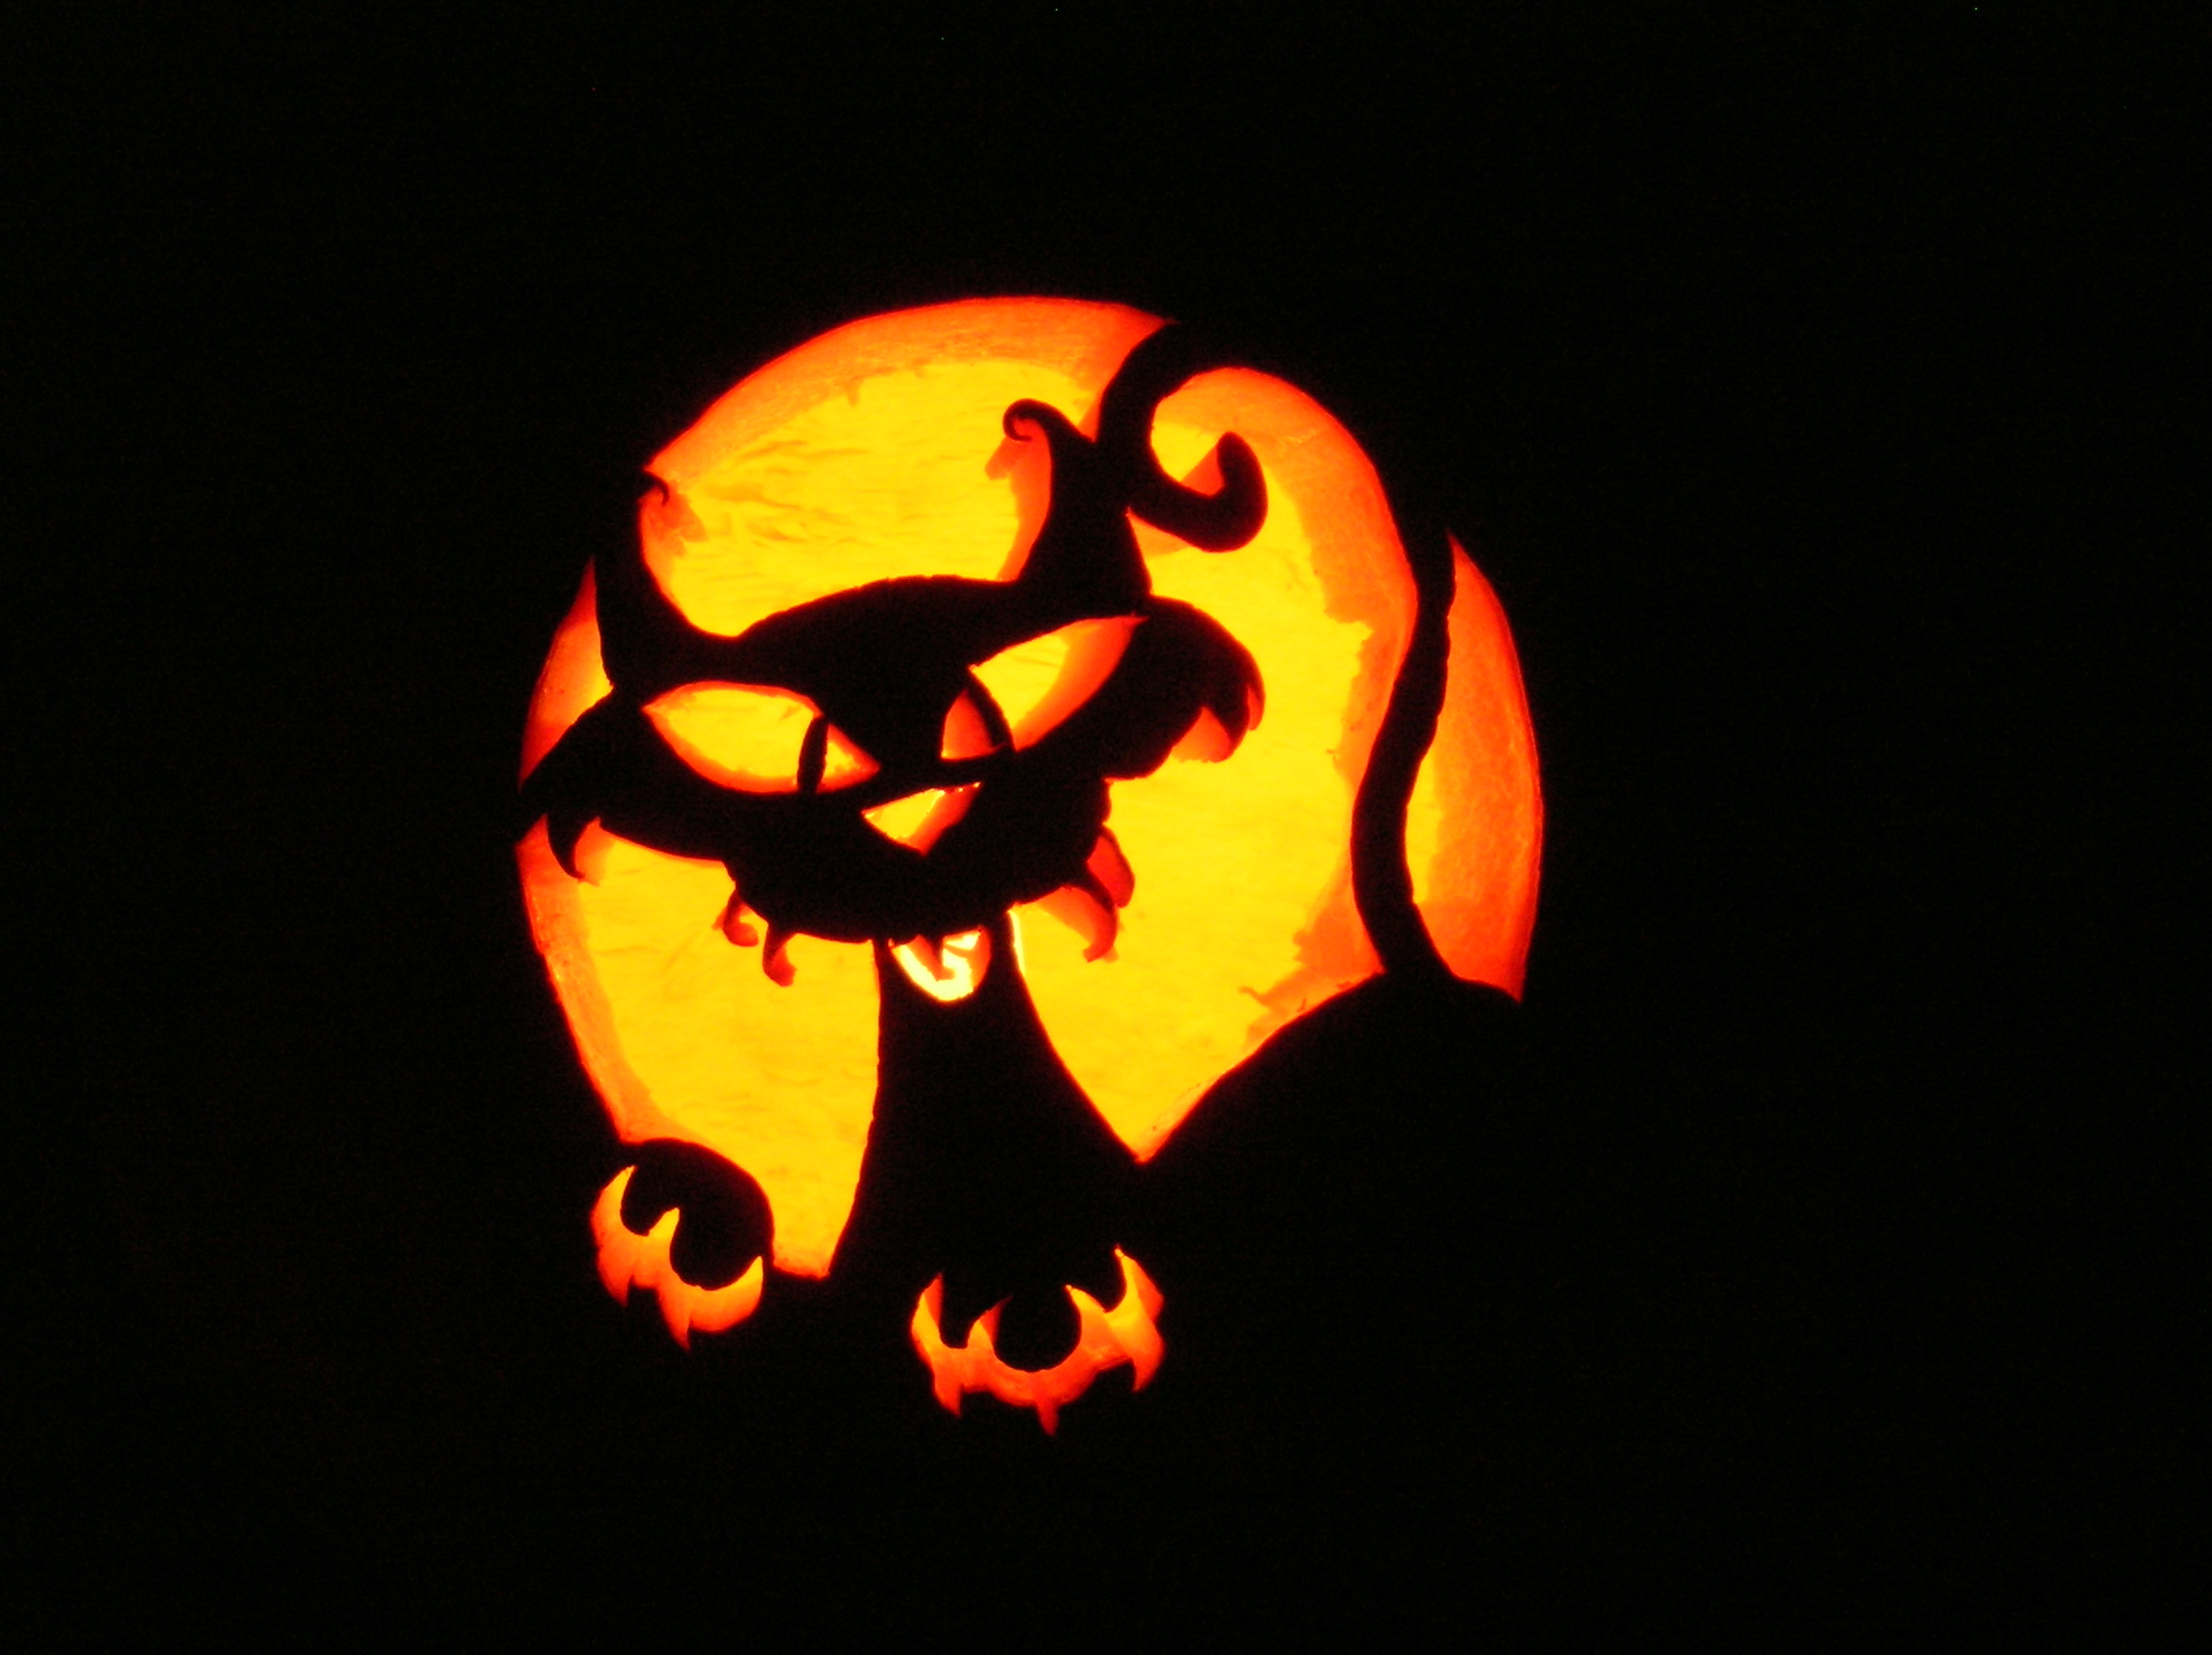 File:Happy Halloween 1!.jpg - Wikimedia Commons